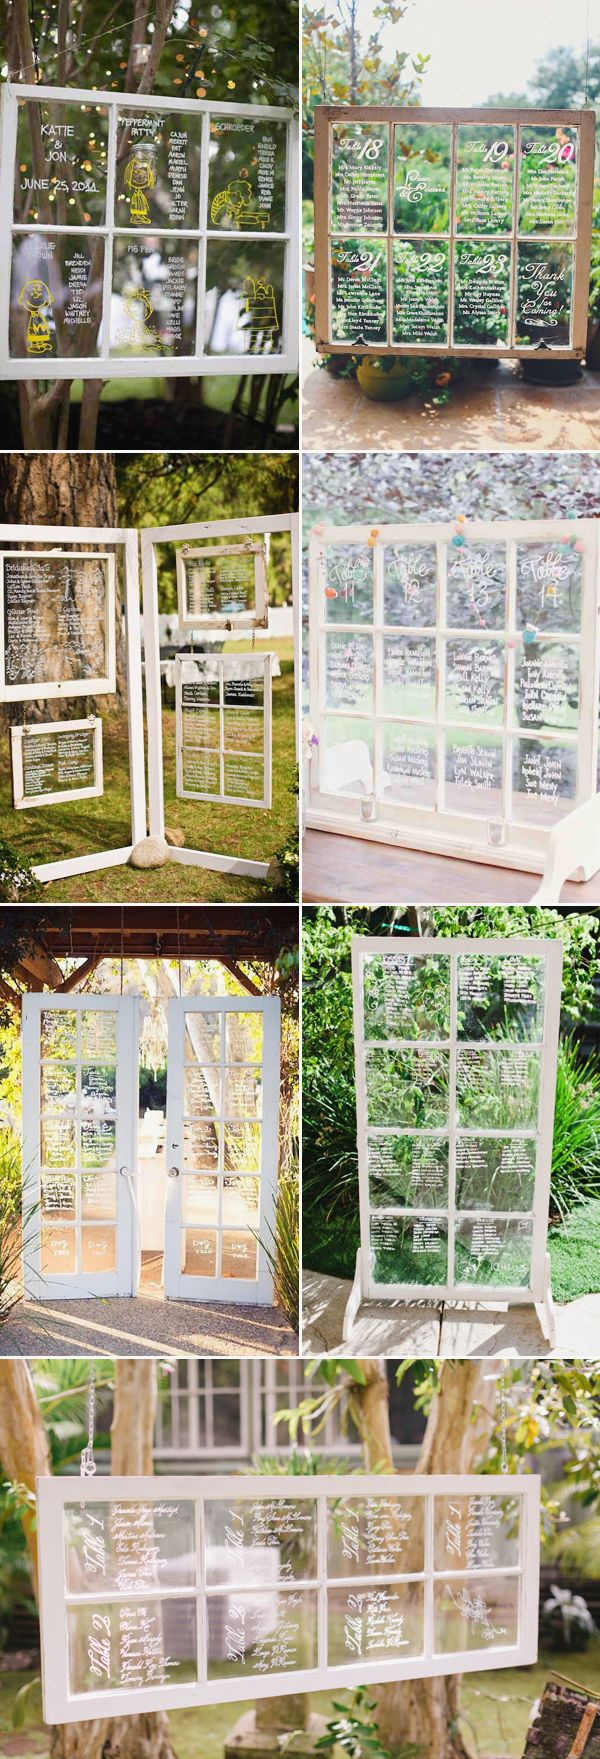 25  Wedding Seating Chart Ideas Your Guests Will Love! | http://www.deerpearlflowers.com/wedding-seating-chart-ideas-your-guests-will-love/